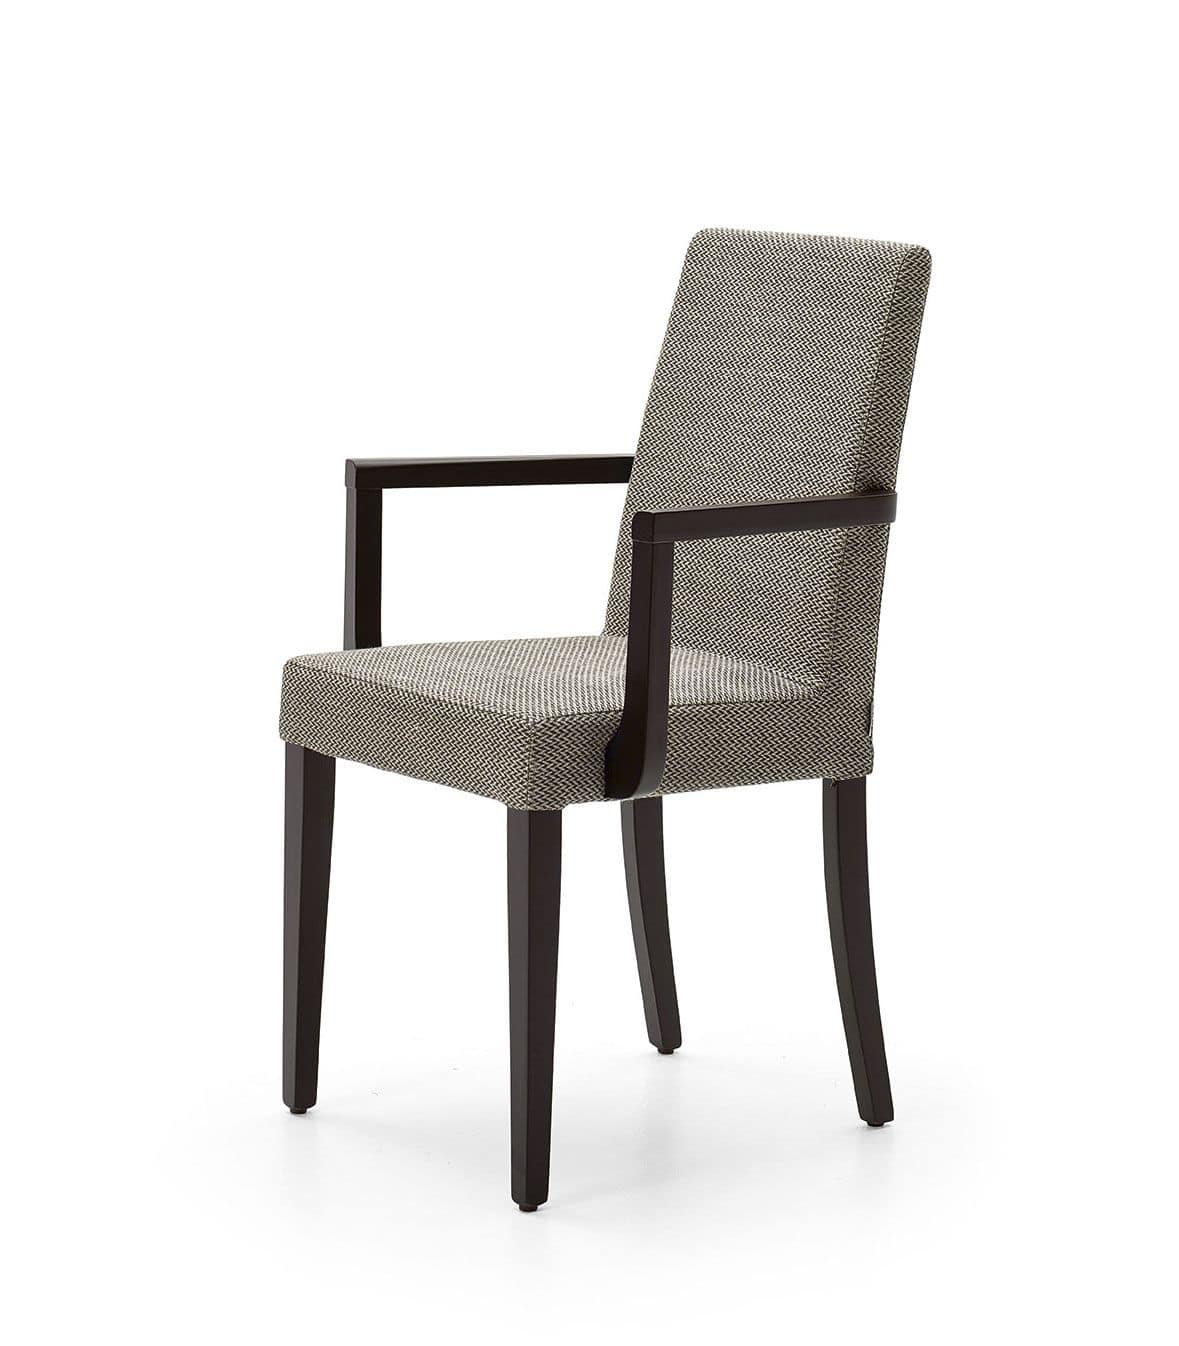 chair with arms shabby chic upholstered armrests for dining room idfdesign